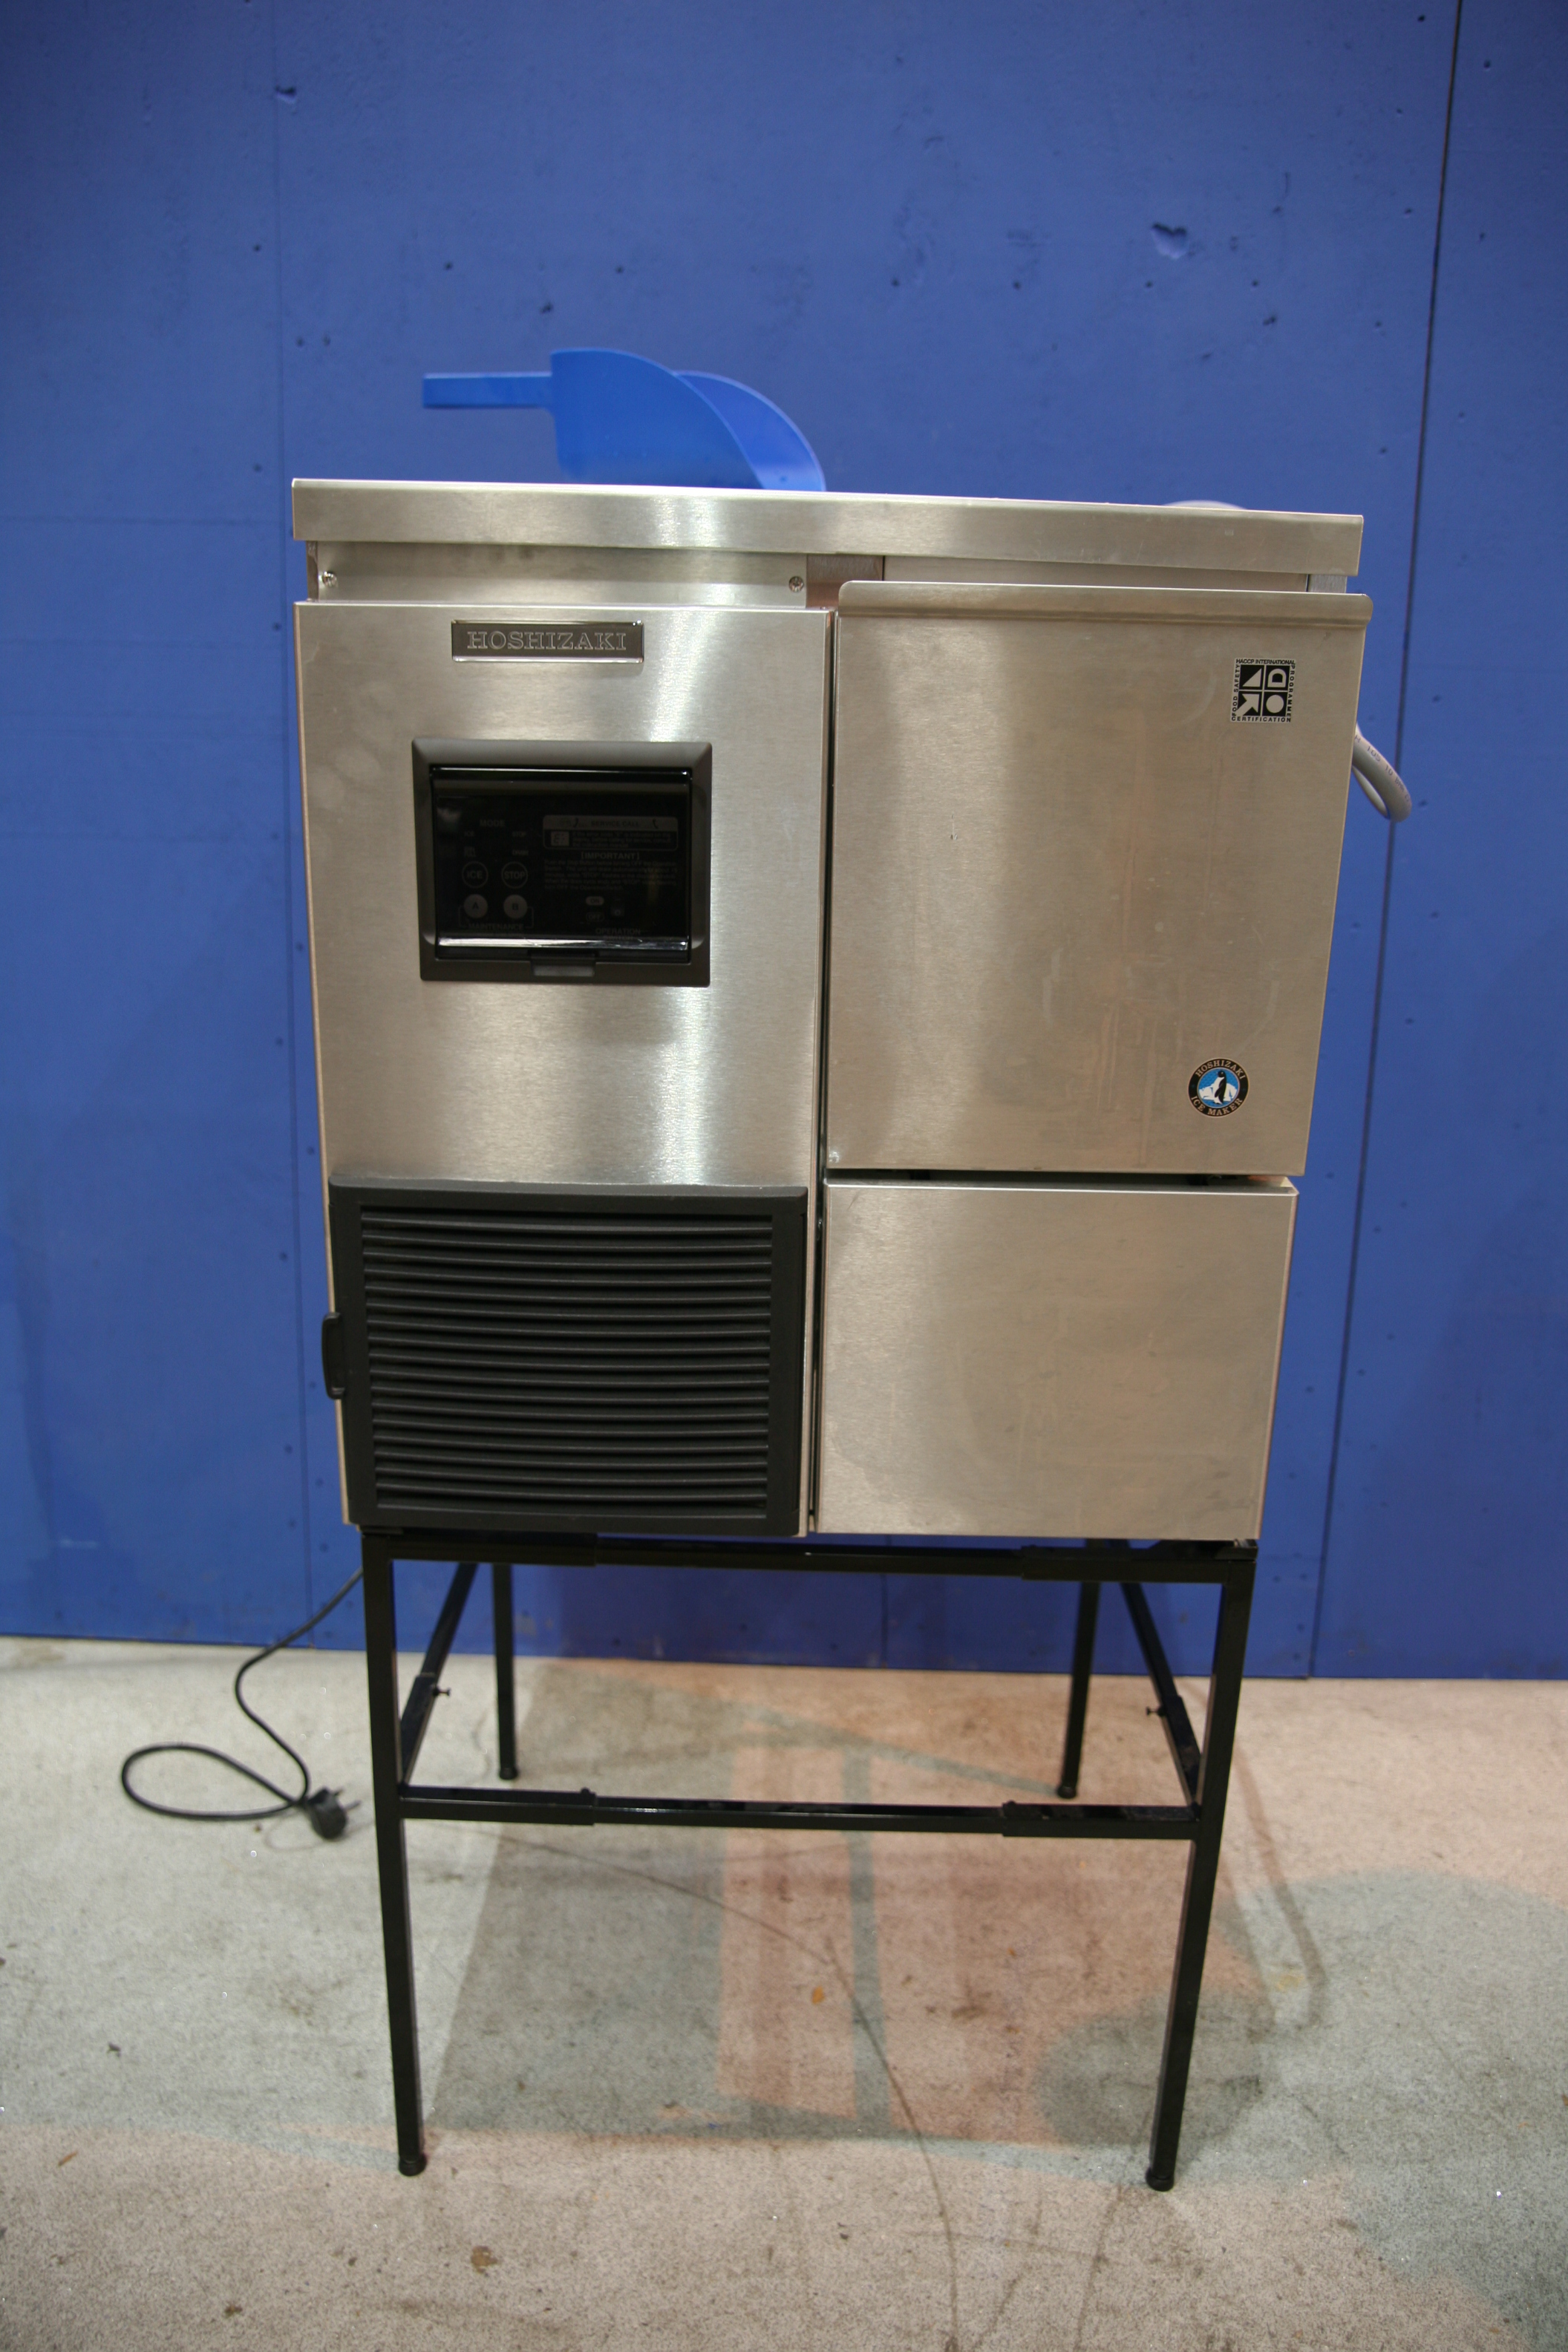 Lot 49 - Hoshizaki Ice Flaking Machine Produces flaked ice, Stainless steel construction,